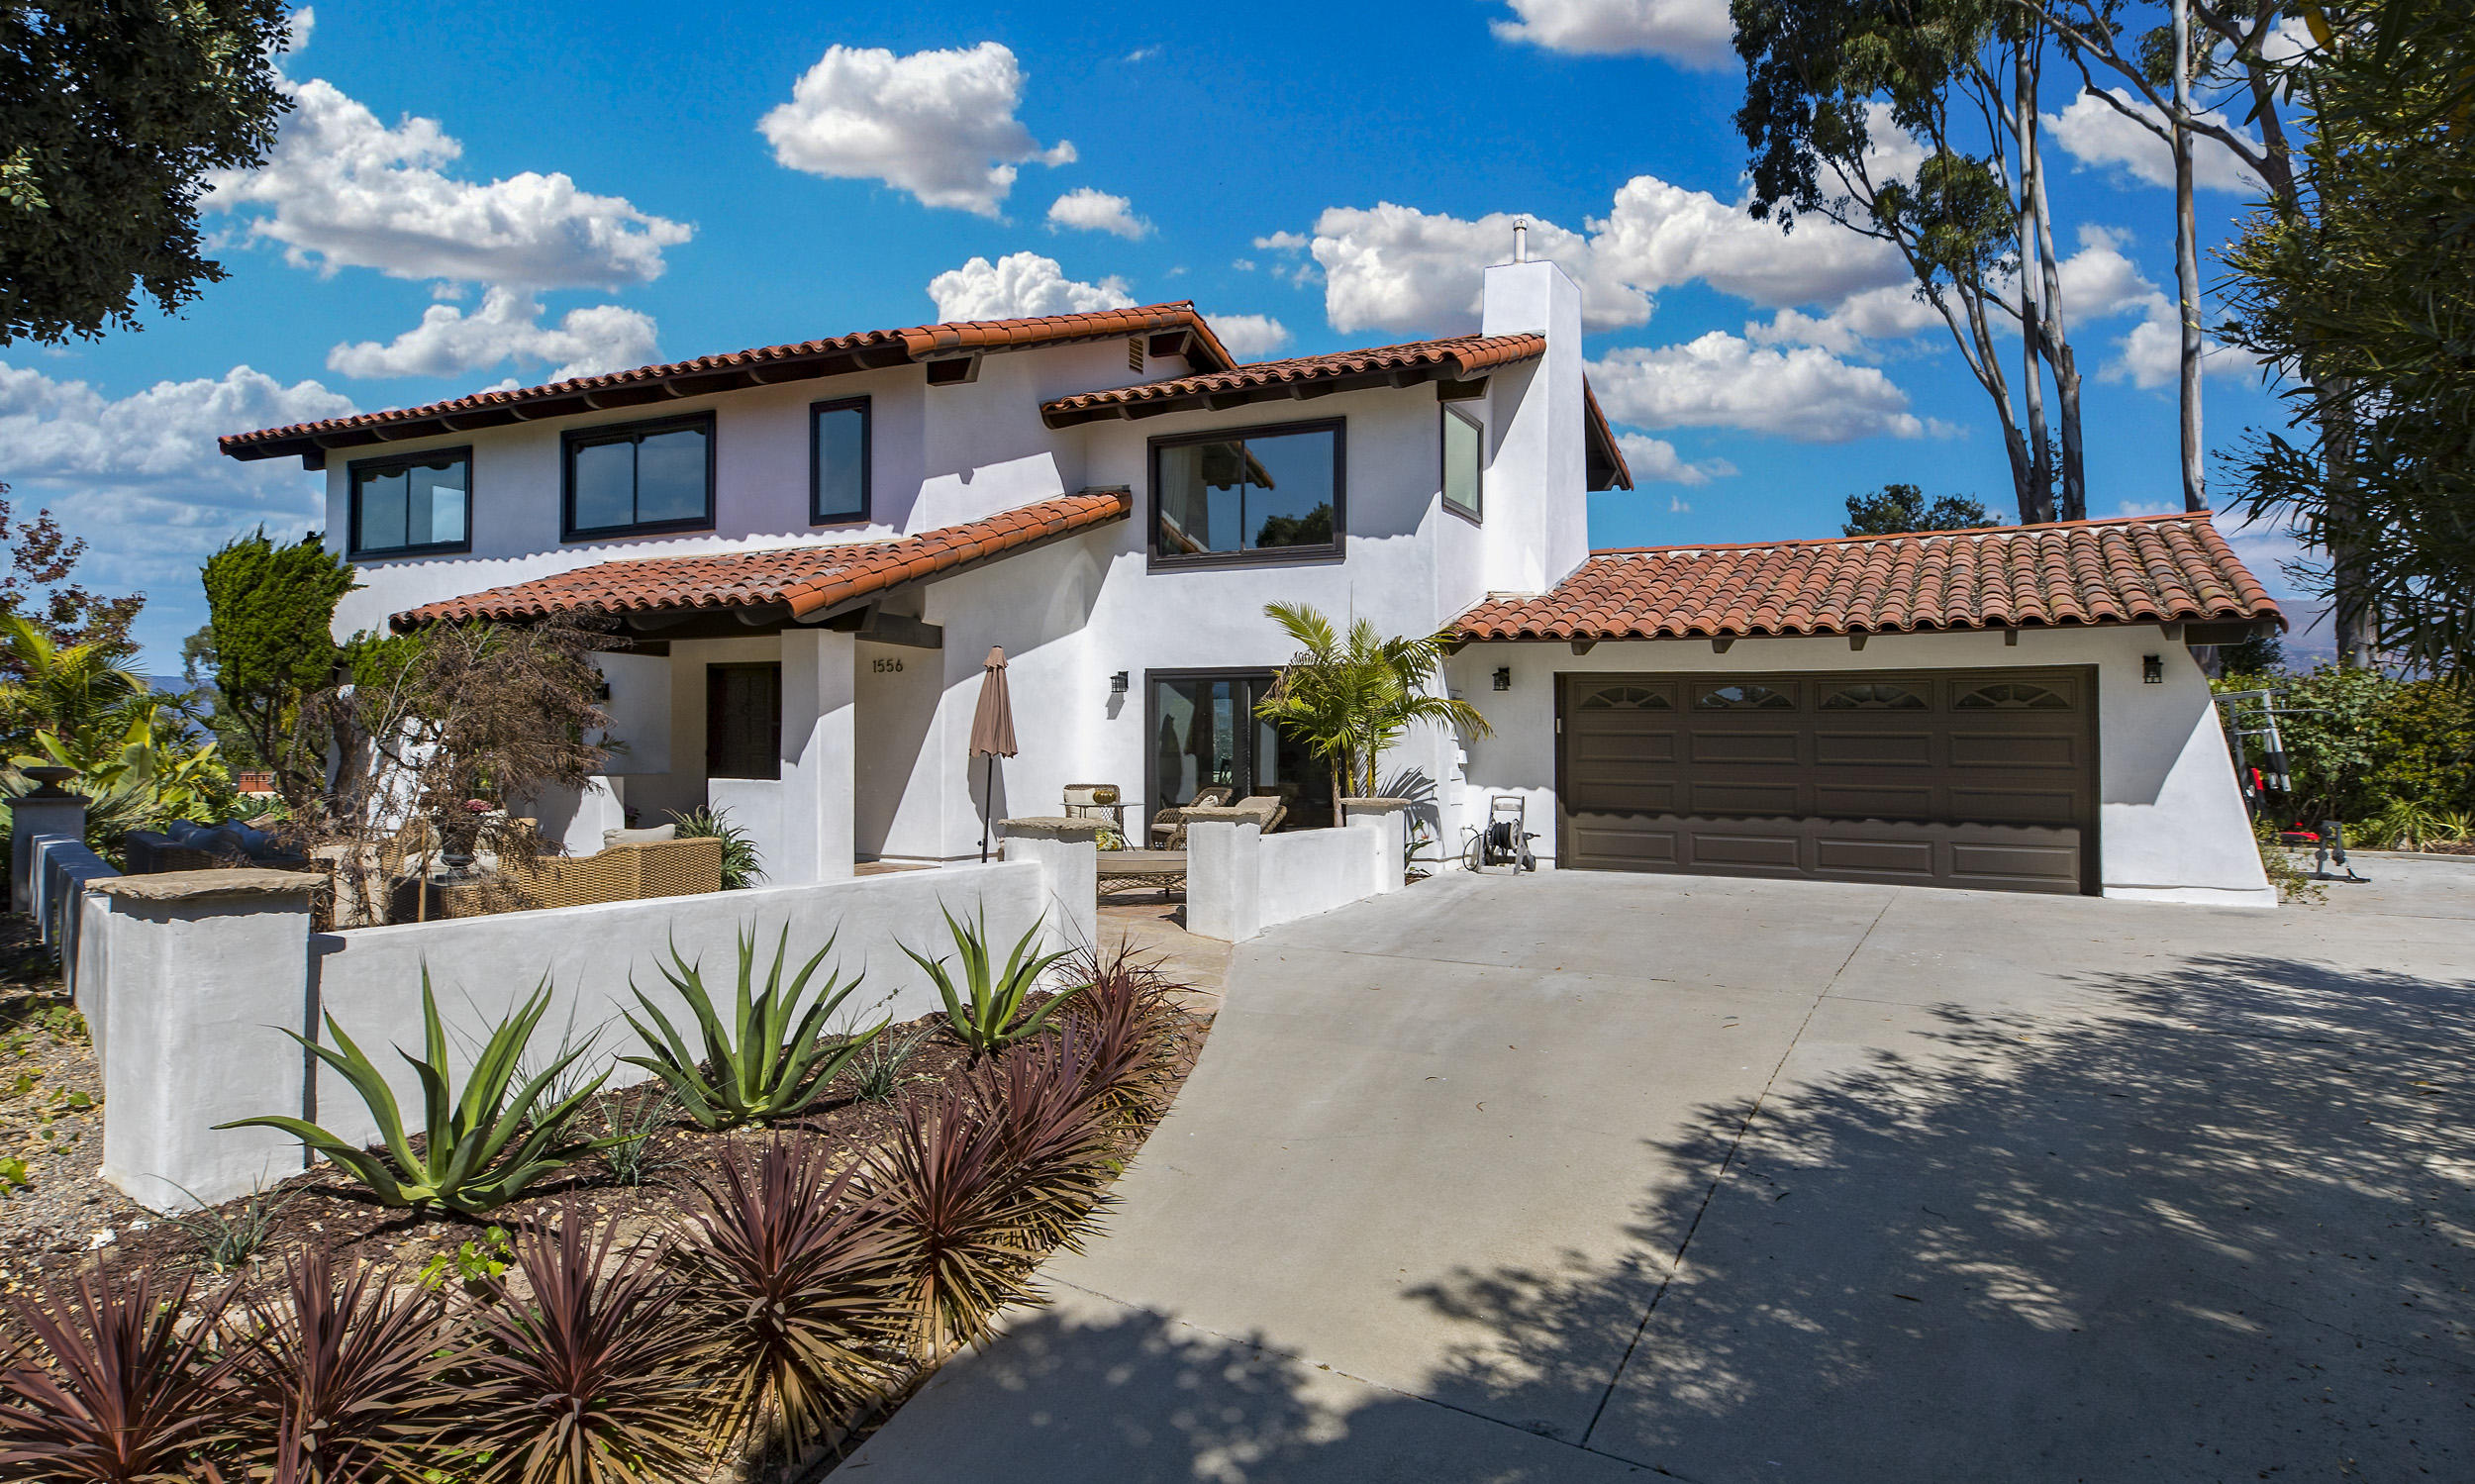 1556  La Cresta Cir, Santa Barbara, California